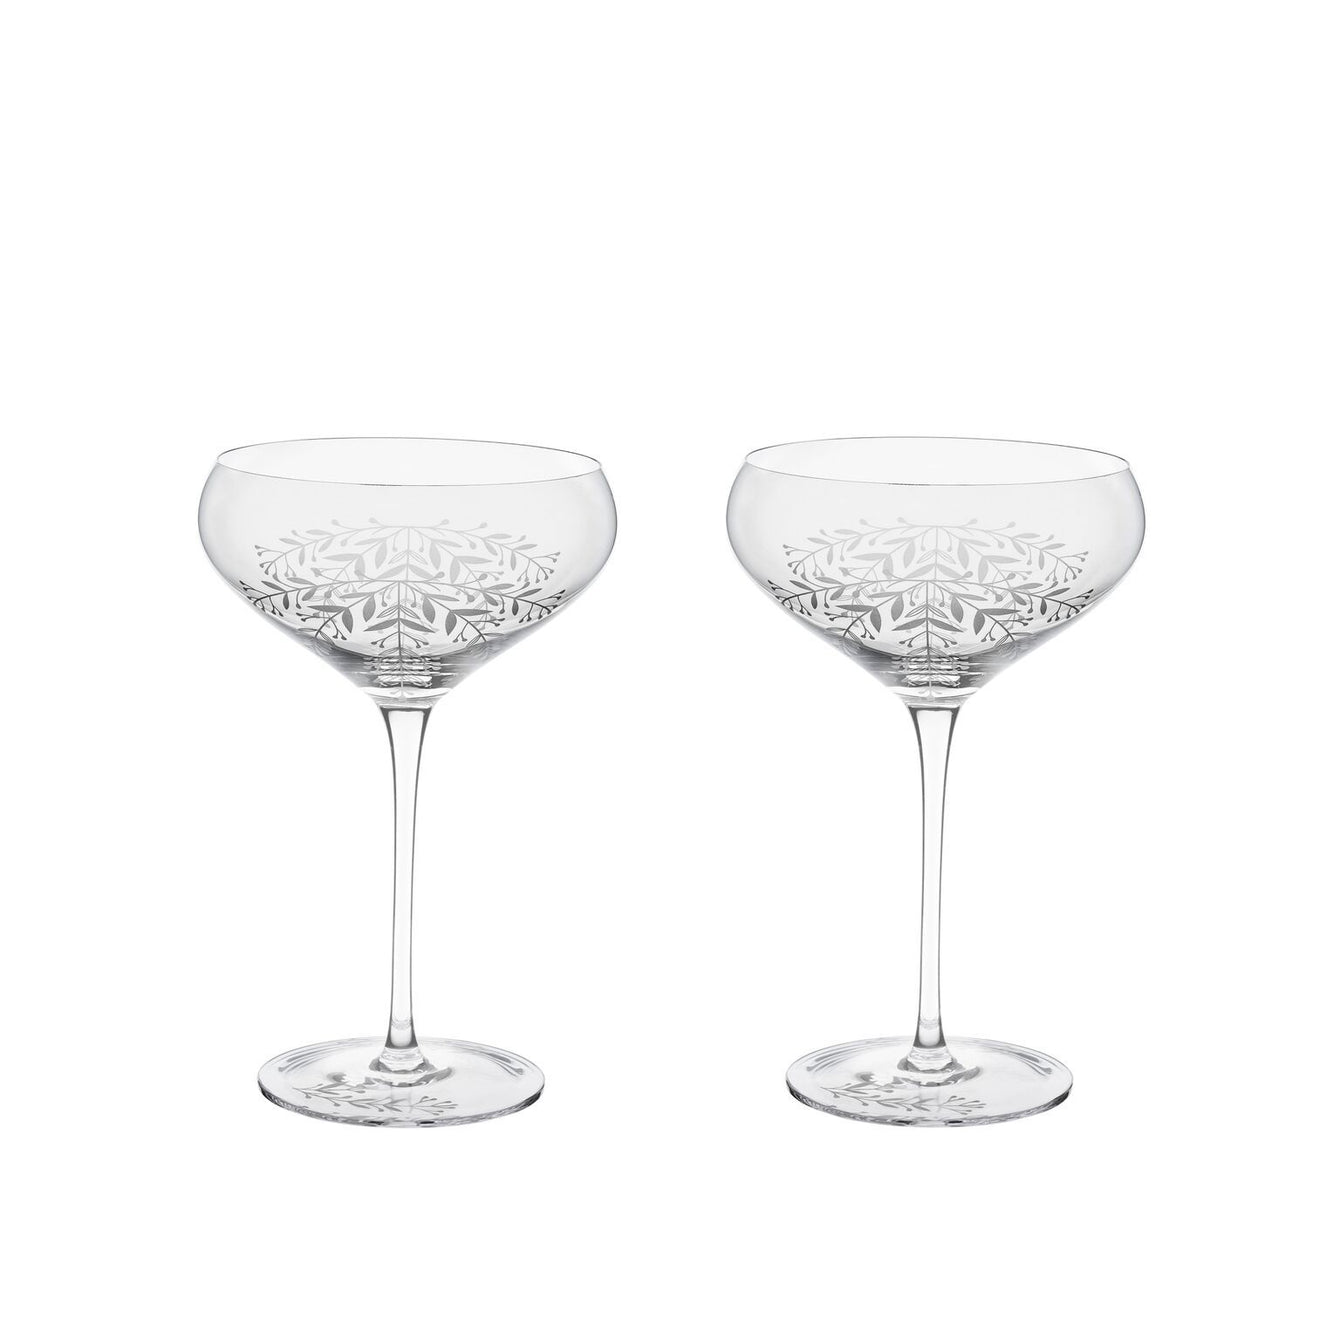 Garden Party Floral Crystal Cocktail Coupe Set-Home - Entertaining - Cocktail Glasses Sets-TWINE-Peccadilly